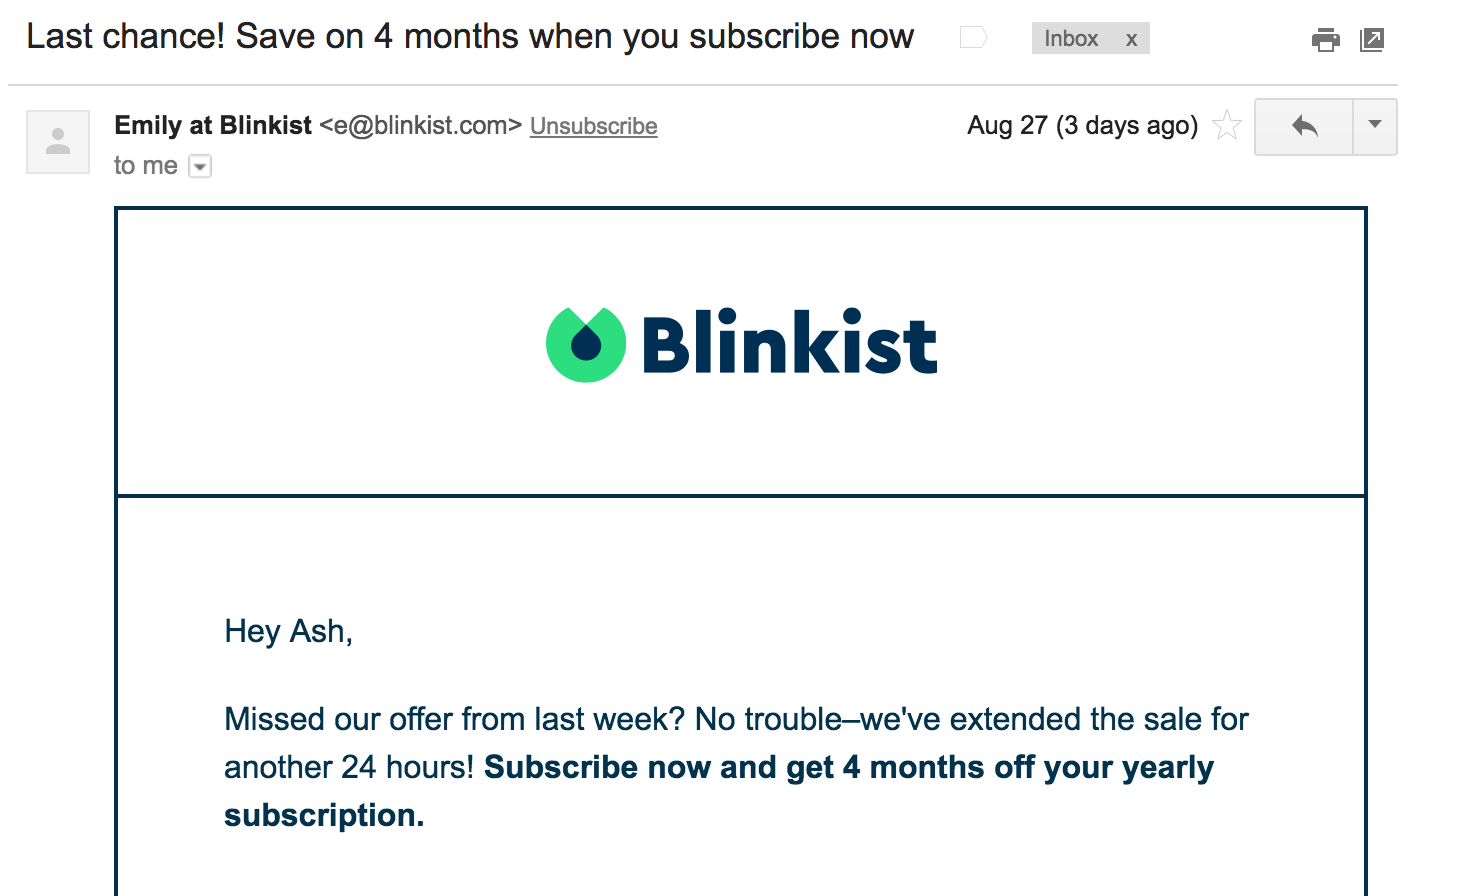 Blinkist Email Subject Example